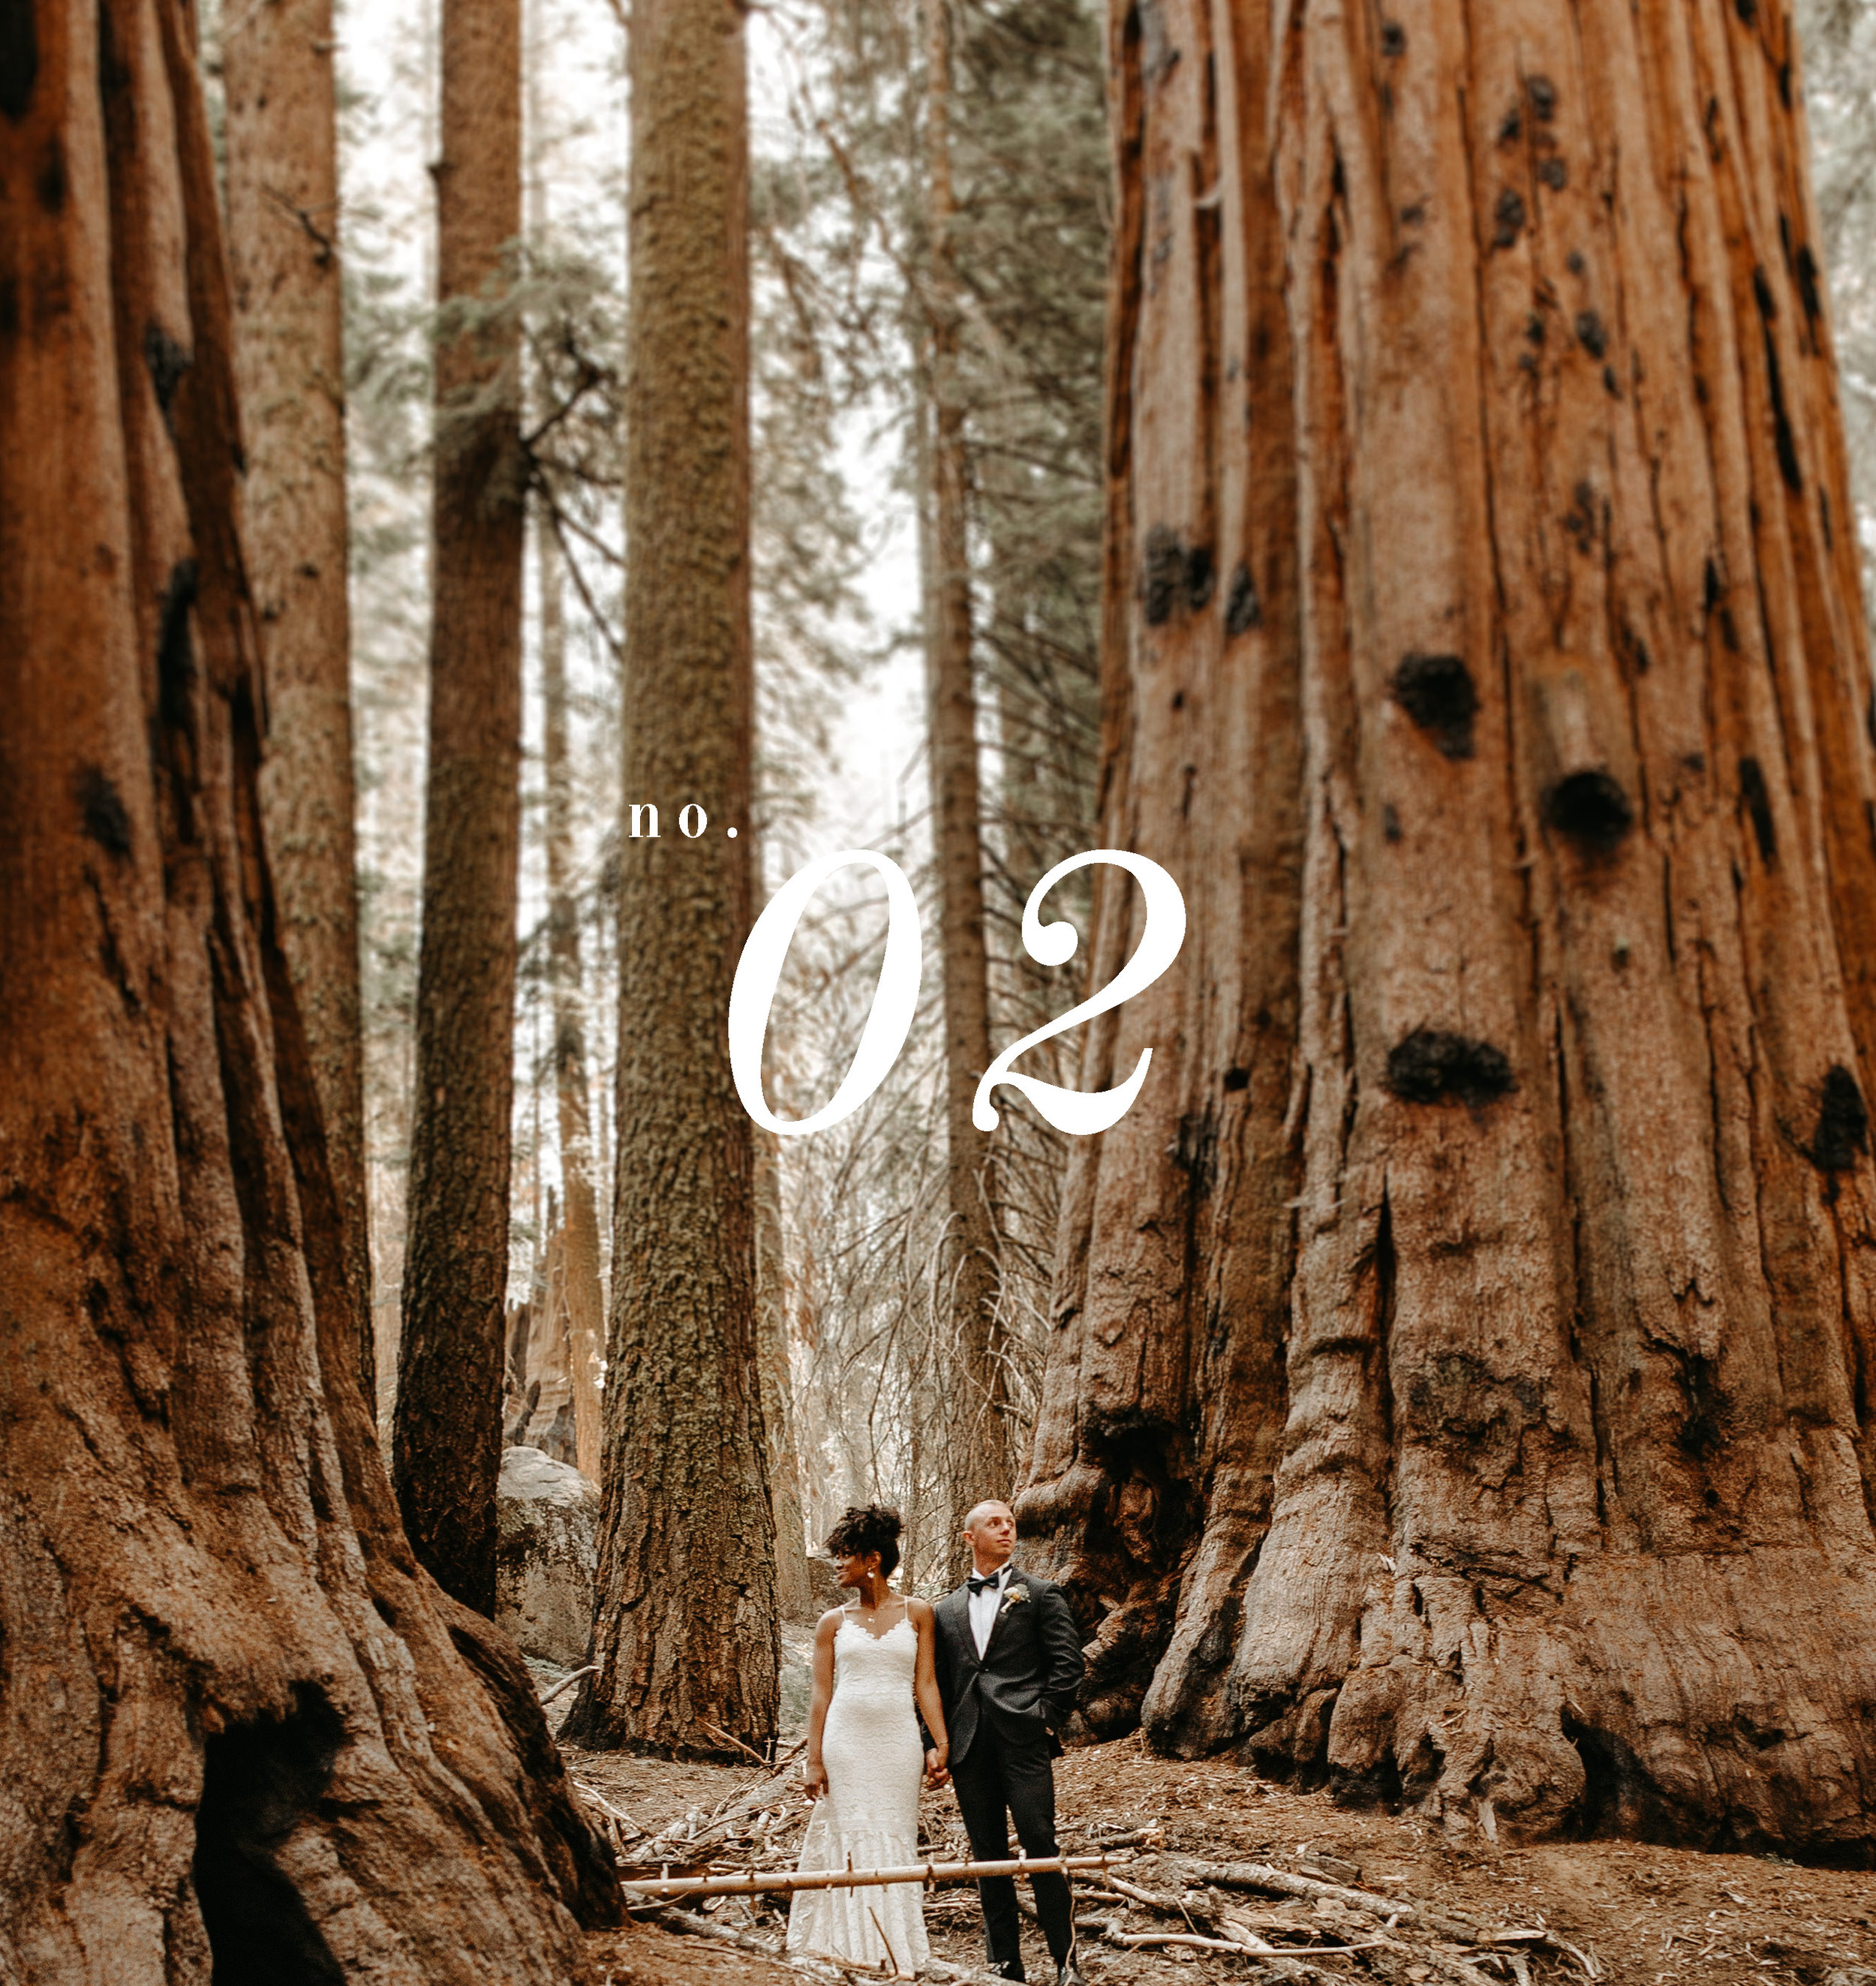 save the date - All I need is your wedding date and a general area (i.e. Mexico, Greece, Yosemite, Zion, Hawaii, Italy etc.) It's ok if you're not exactly sure what spot or venue - I can always help!RESERVE YOUR DATE